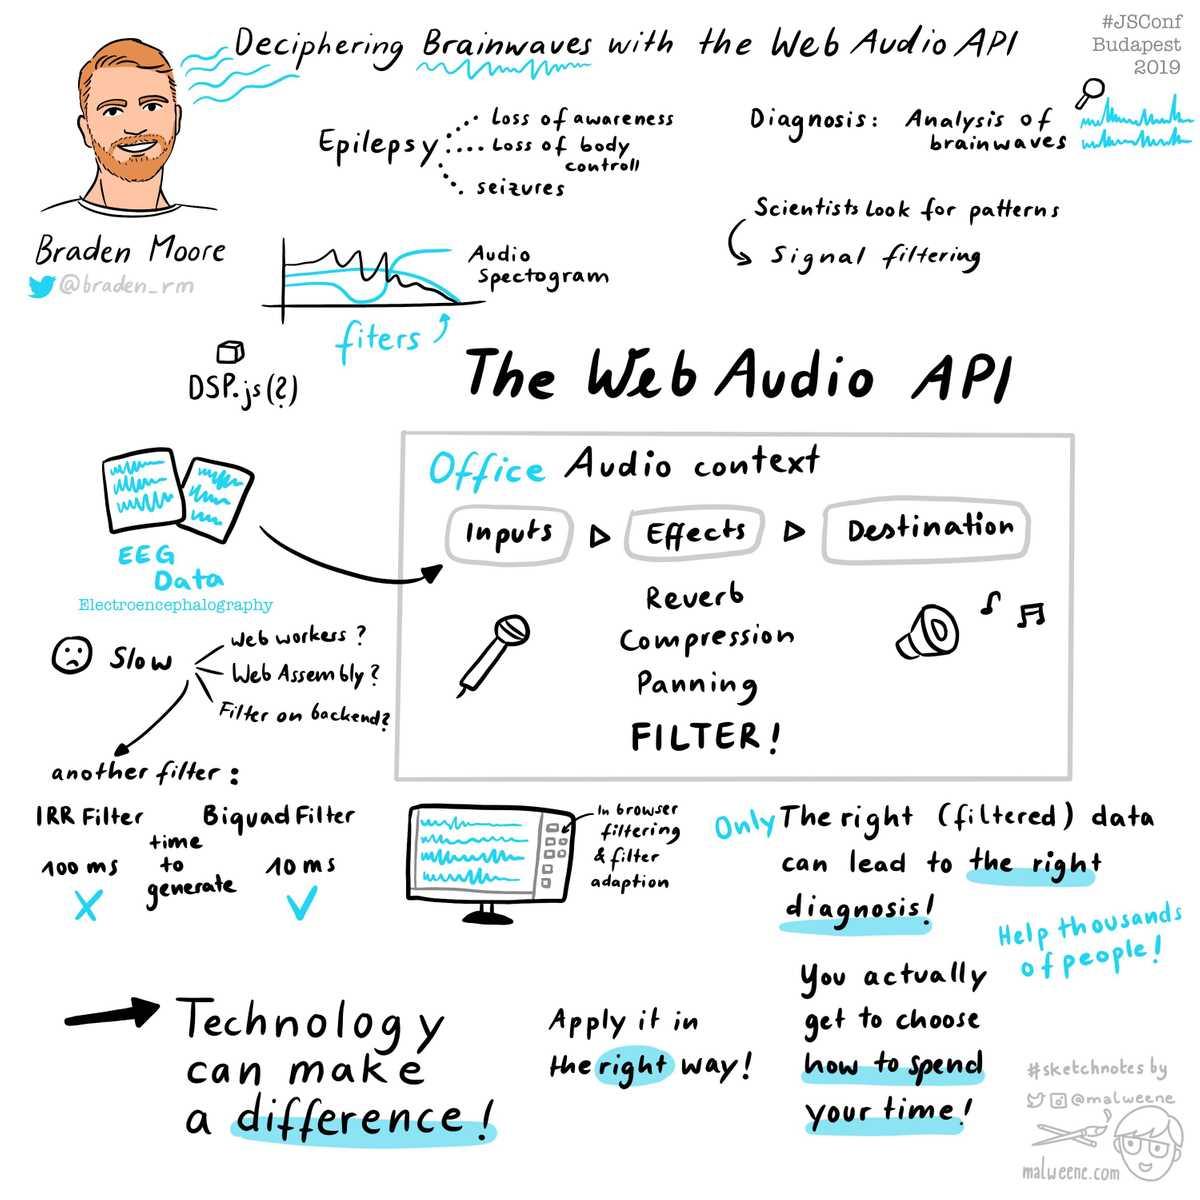 Hand-drawn sketch notes summarizing the talk of Braden Moore